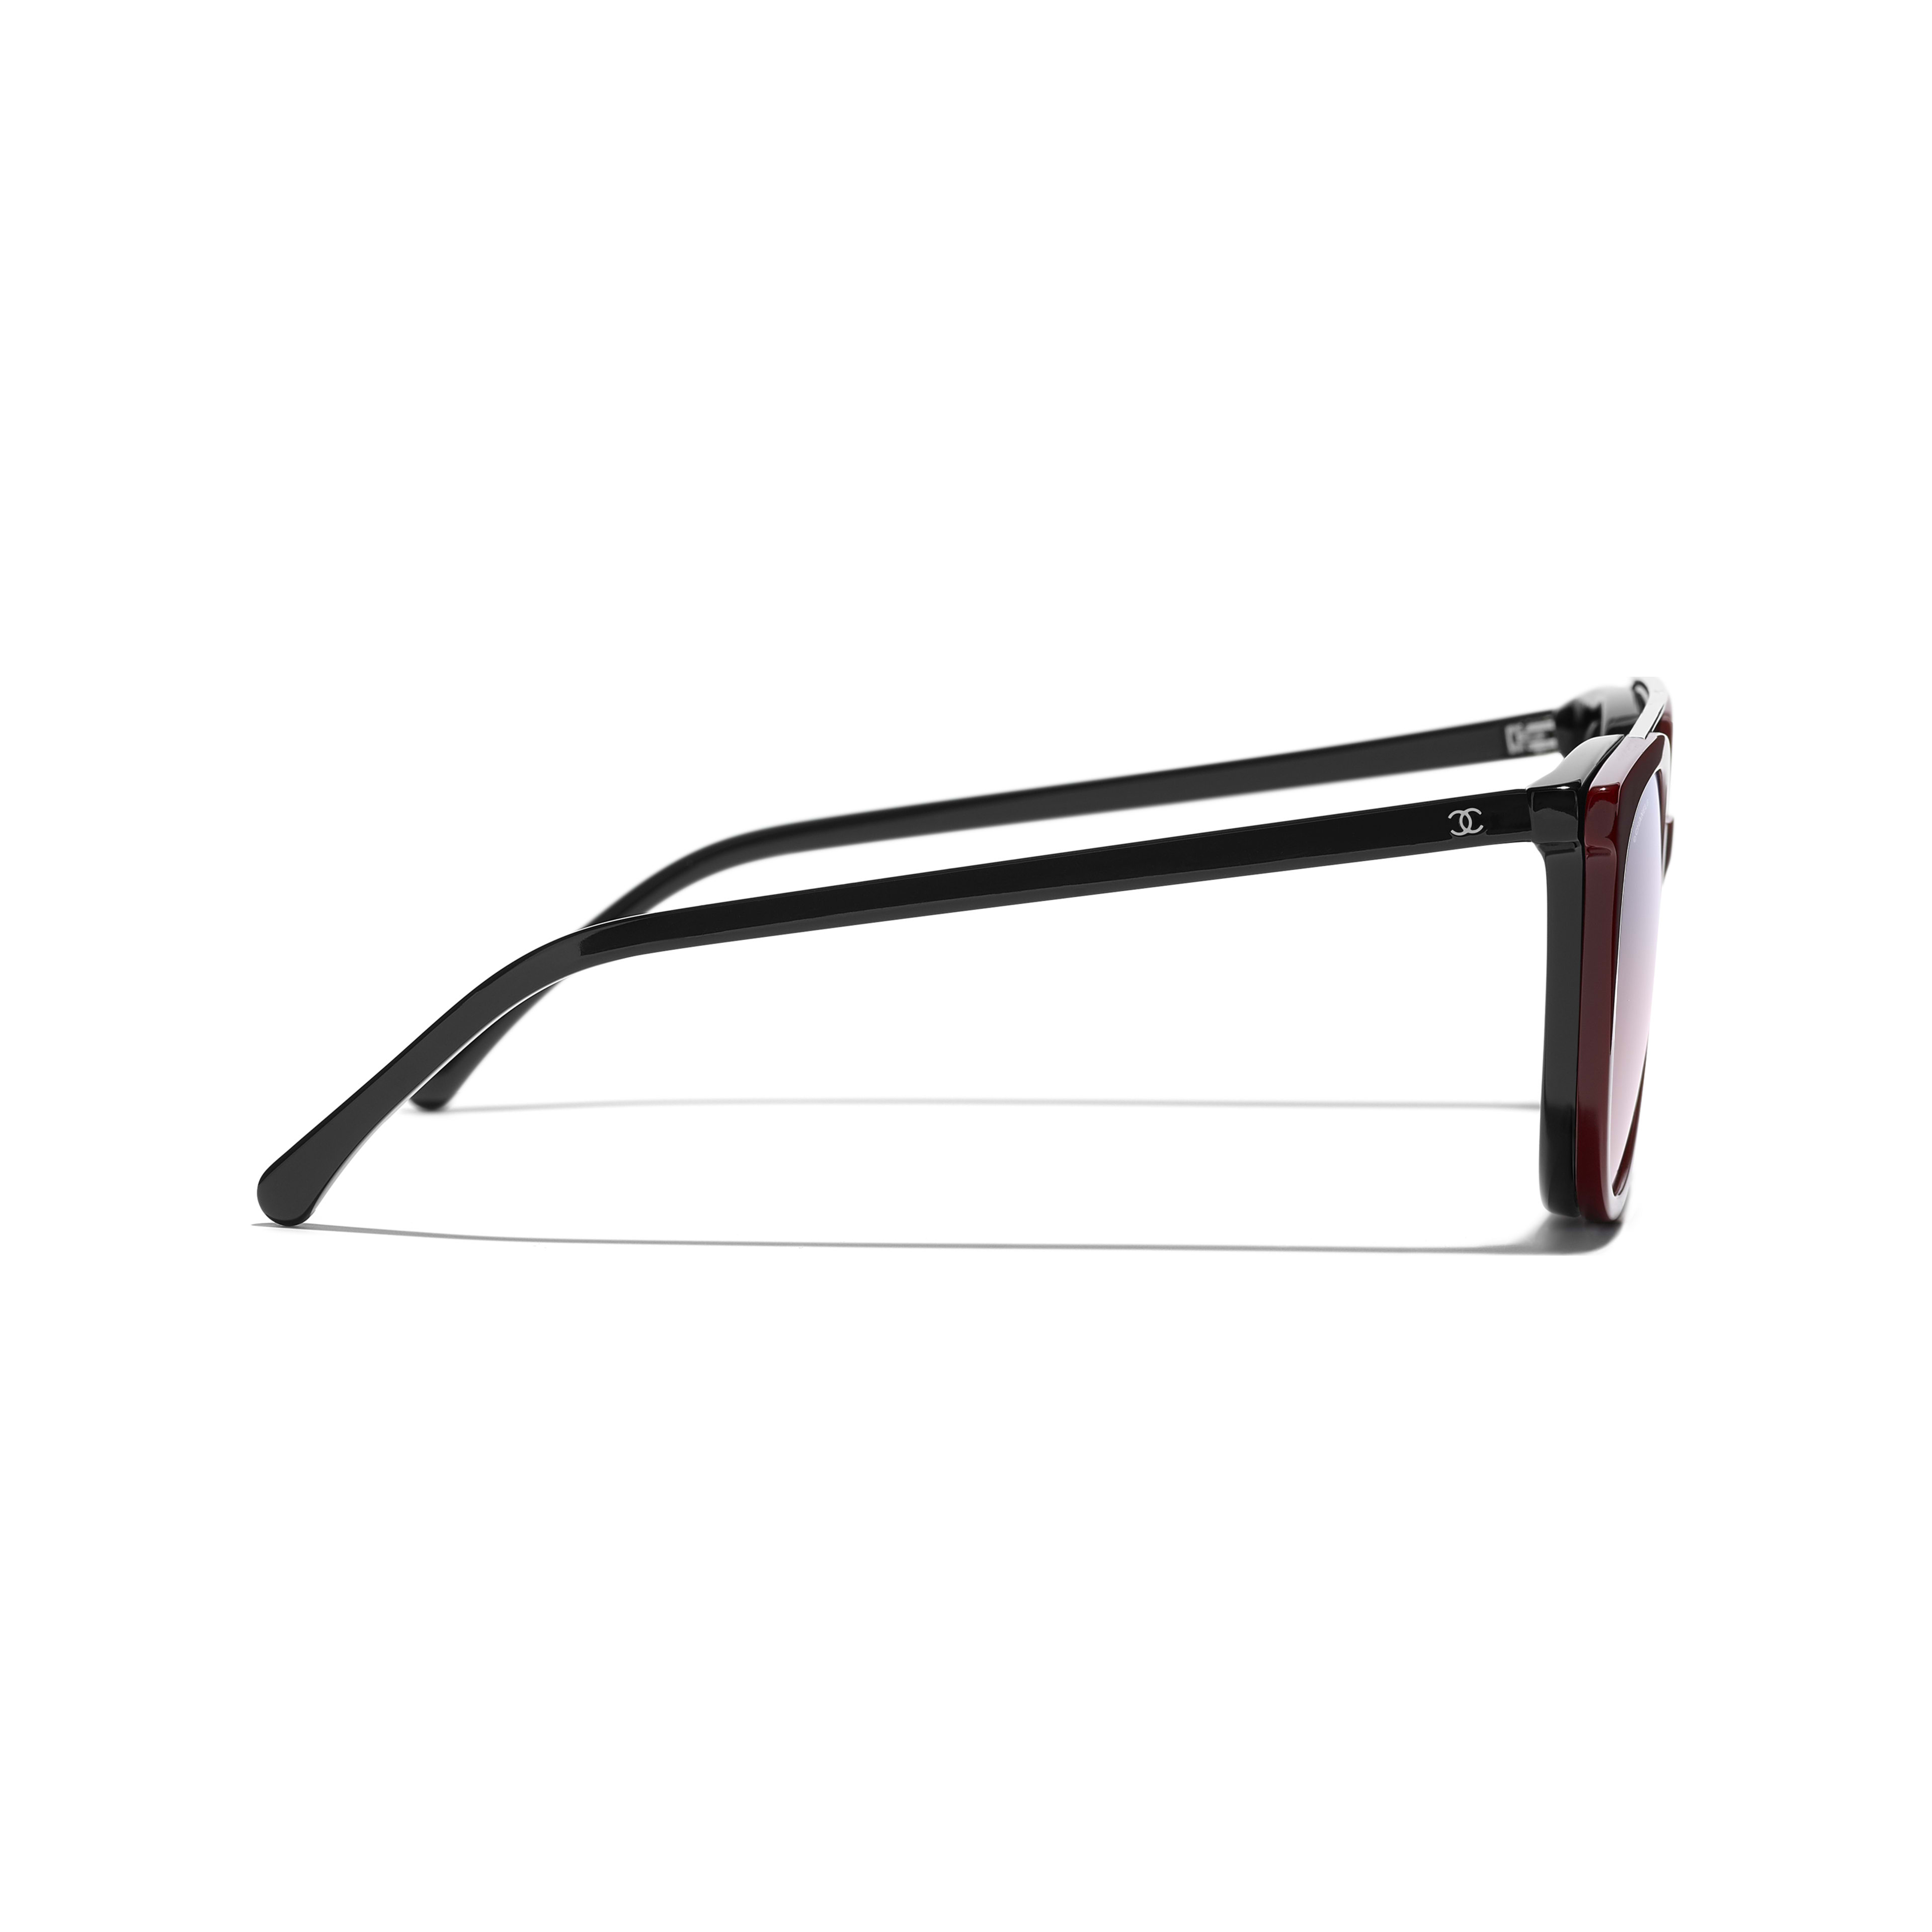 Clip on Sunglasses - Black - Acetate & Metal - Other view - see full sized version